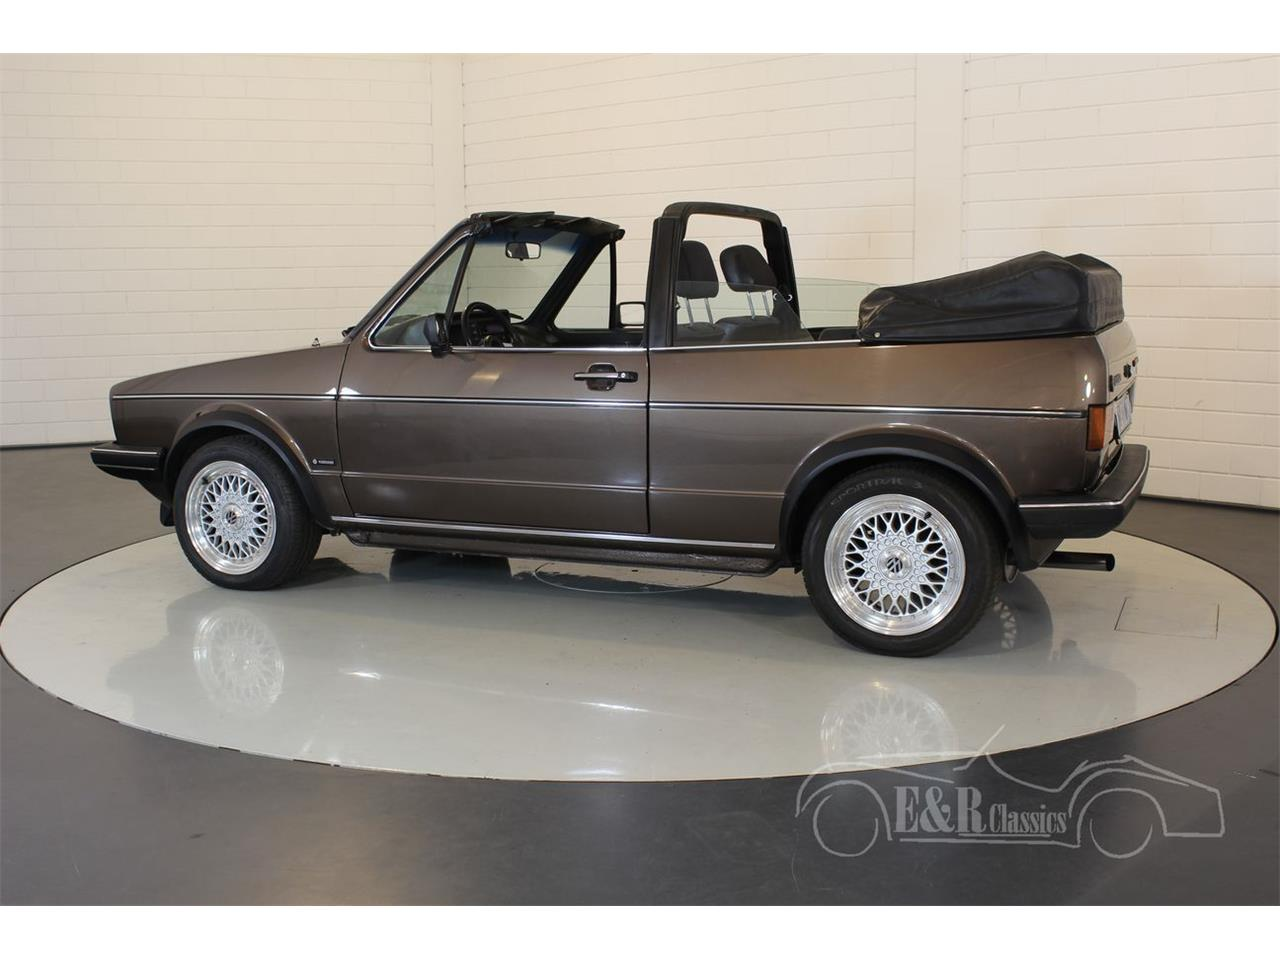 Large Picture of 1984 Volkswagen Golf - $19,100.00 Offered by E & R Classics - PH4B